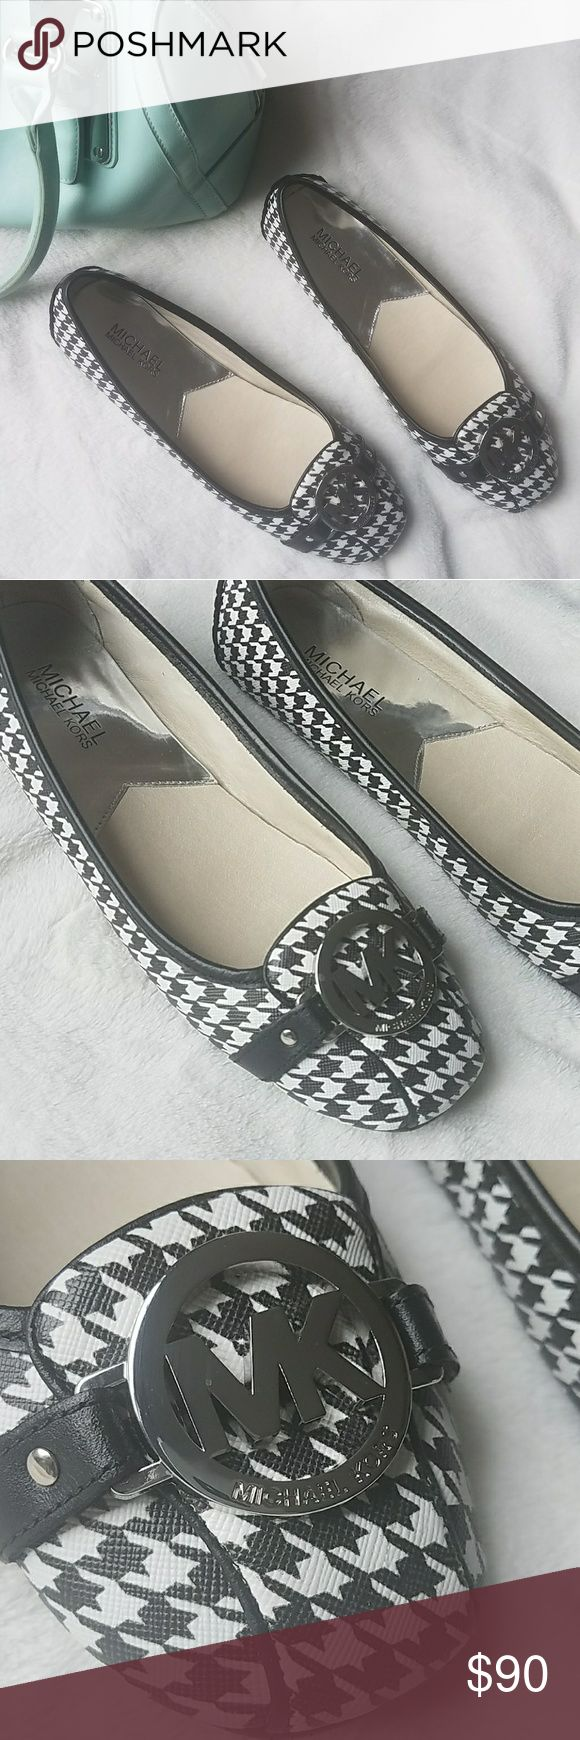 NWOT Michael Kors Fulton Moccasins Beautiful never before worn black and white Michael Kors flats  🔹Size 7.5  🔹Comes with original box 🚫Smoke free home Michael Kors Shoes Flats & Loafers